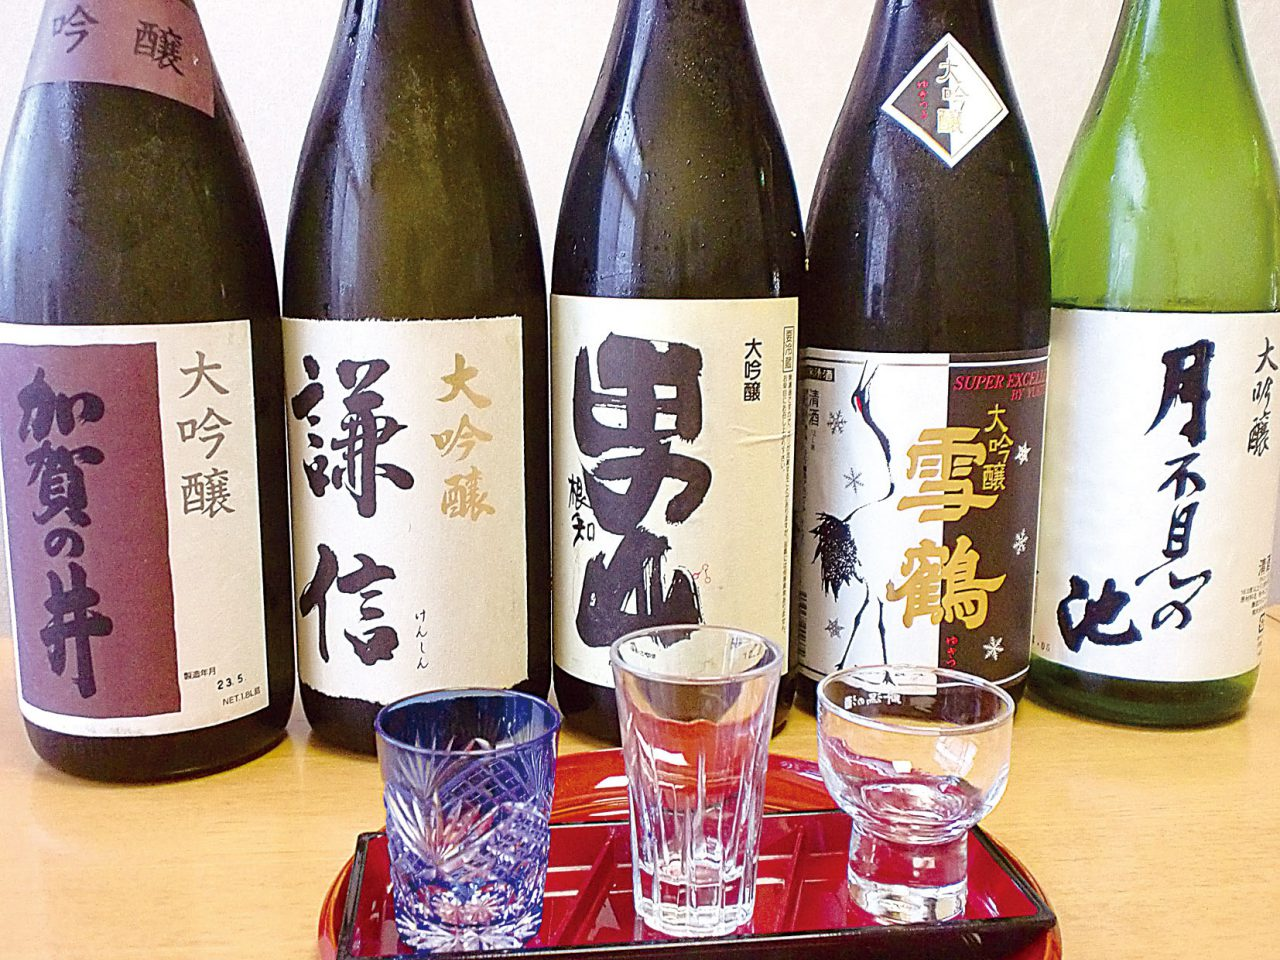 Sample Itoigawa's Five Sake Breweries